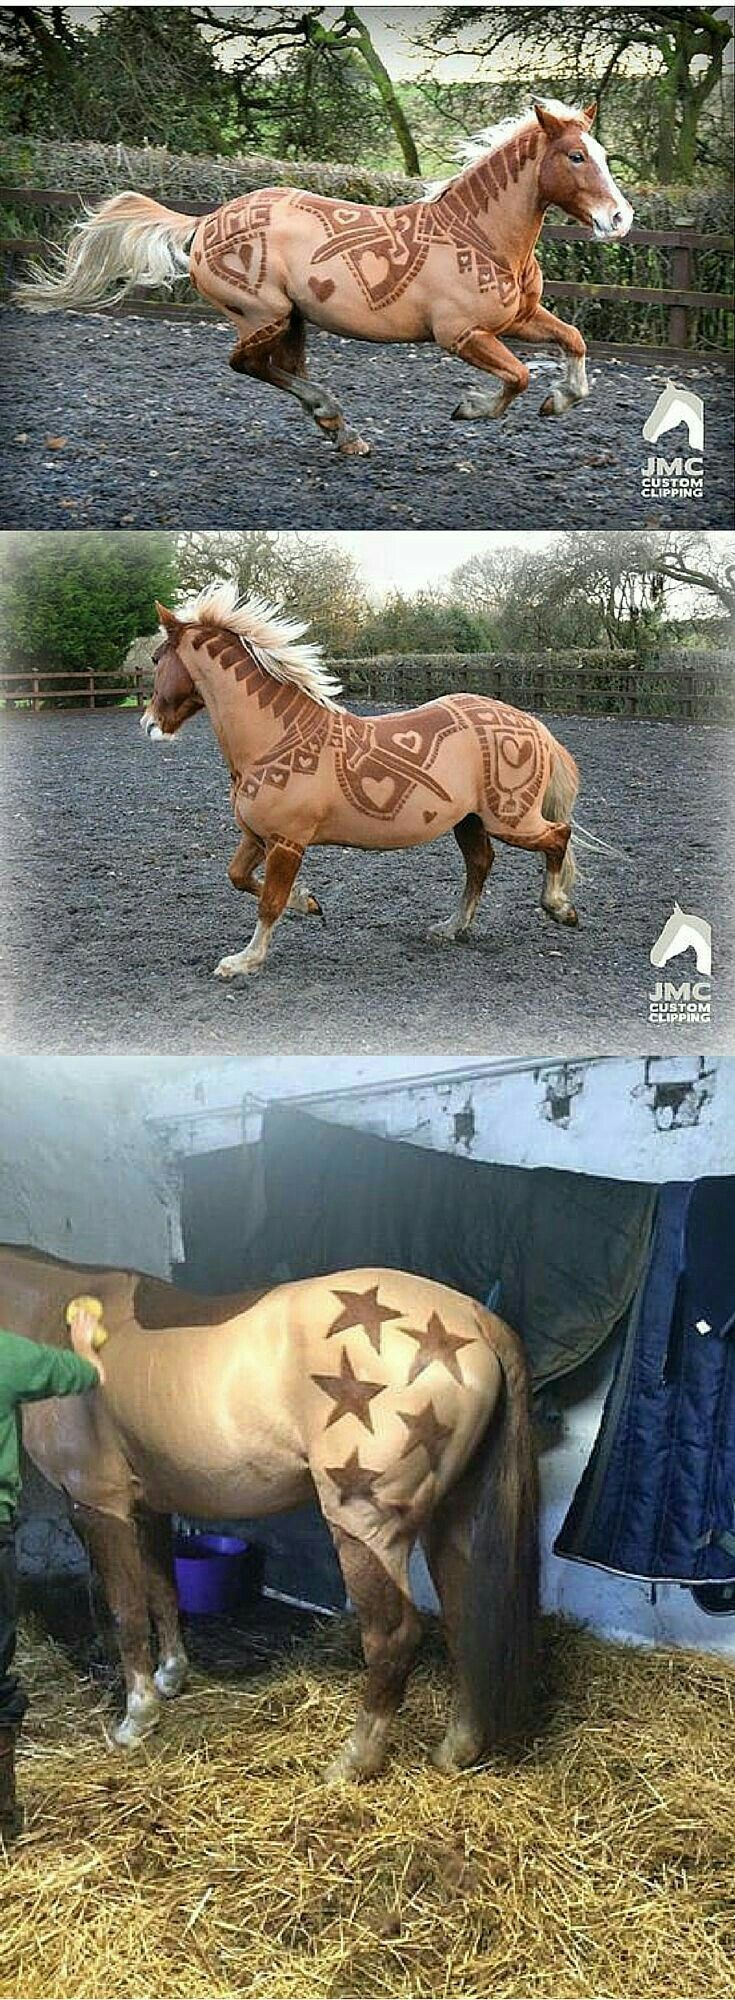 Beautiful clipping jobs!! My horse is seal bay, so they wouldn't show up as well on her though